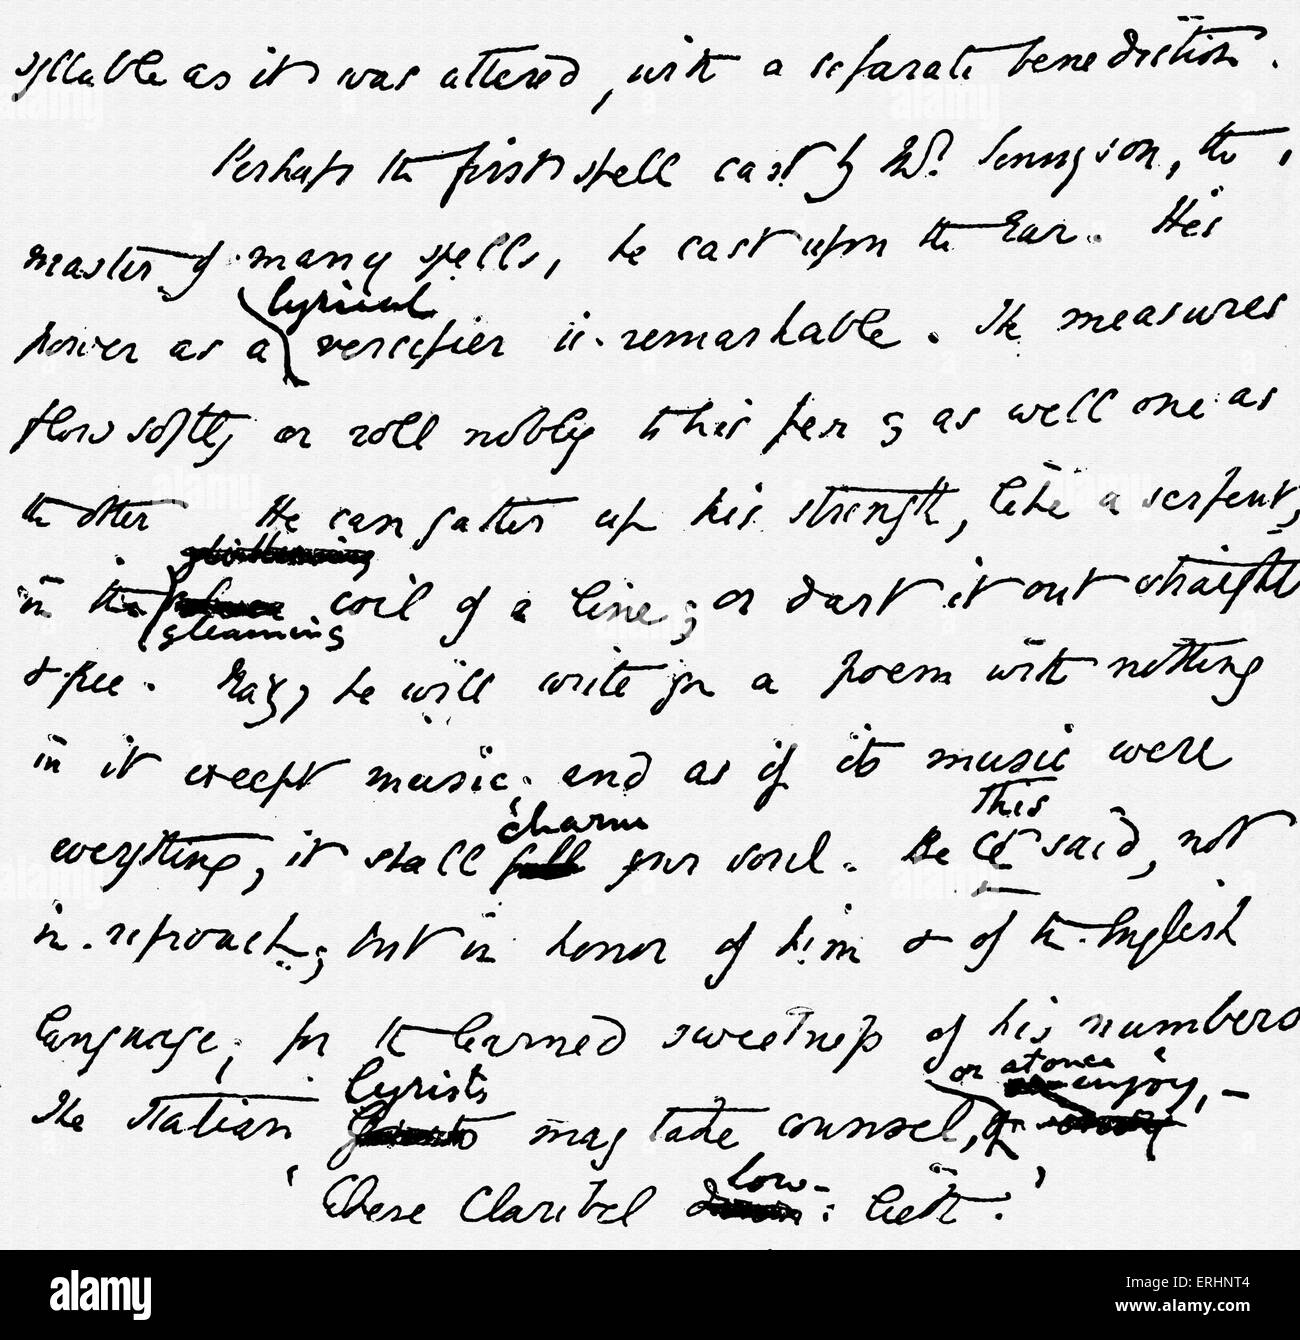 assignment elizabeth barrett browning essay example Home page \ assignment sample \ the flea by john donne, to his coy mistress by andrew marvell and how do i love thee by elizabeth barrett browning the flea by john donne, to his coy mistress by andrew marvell and how do i love thee by elizabeth barrett browning essay.